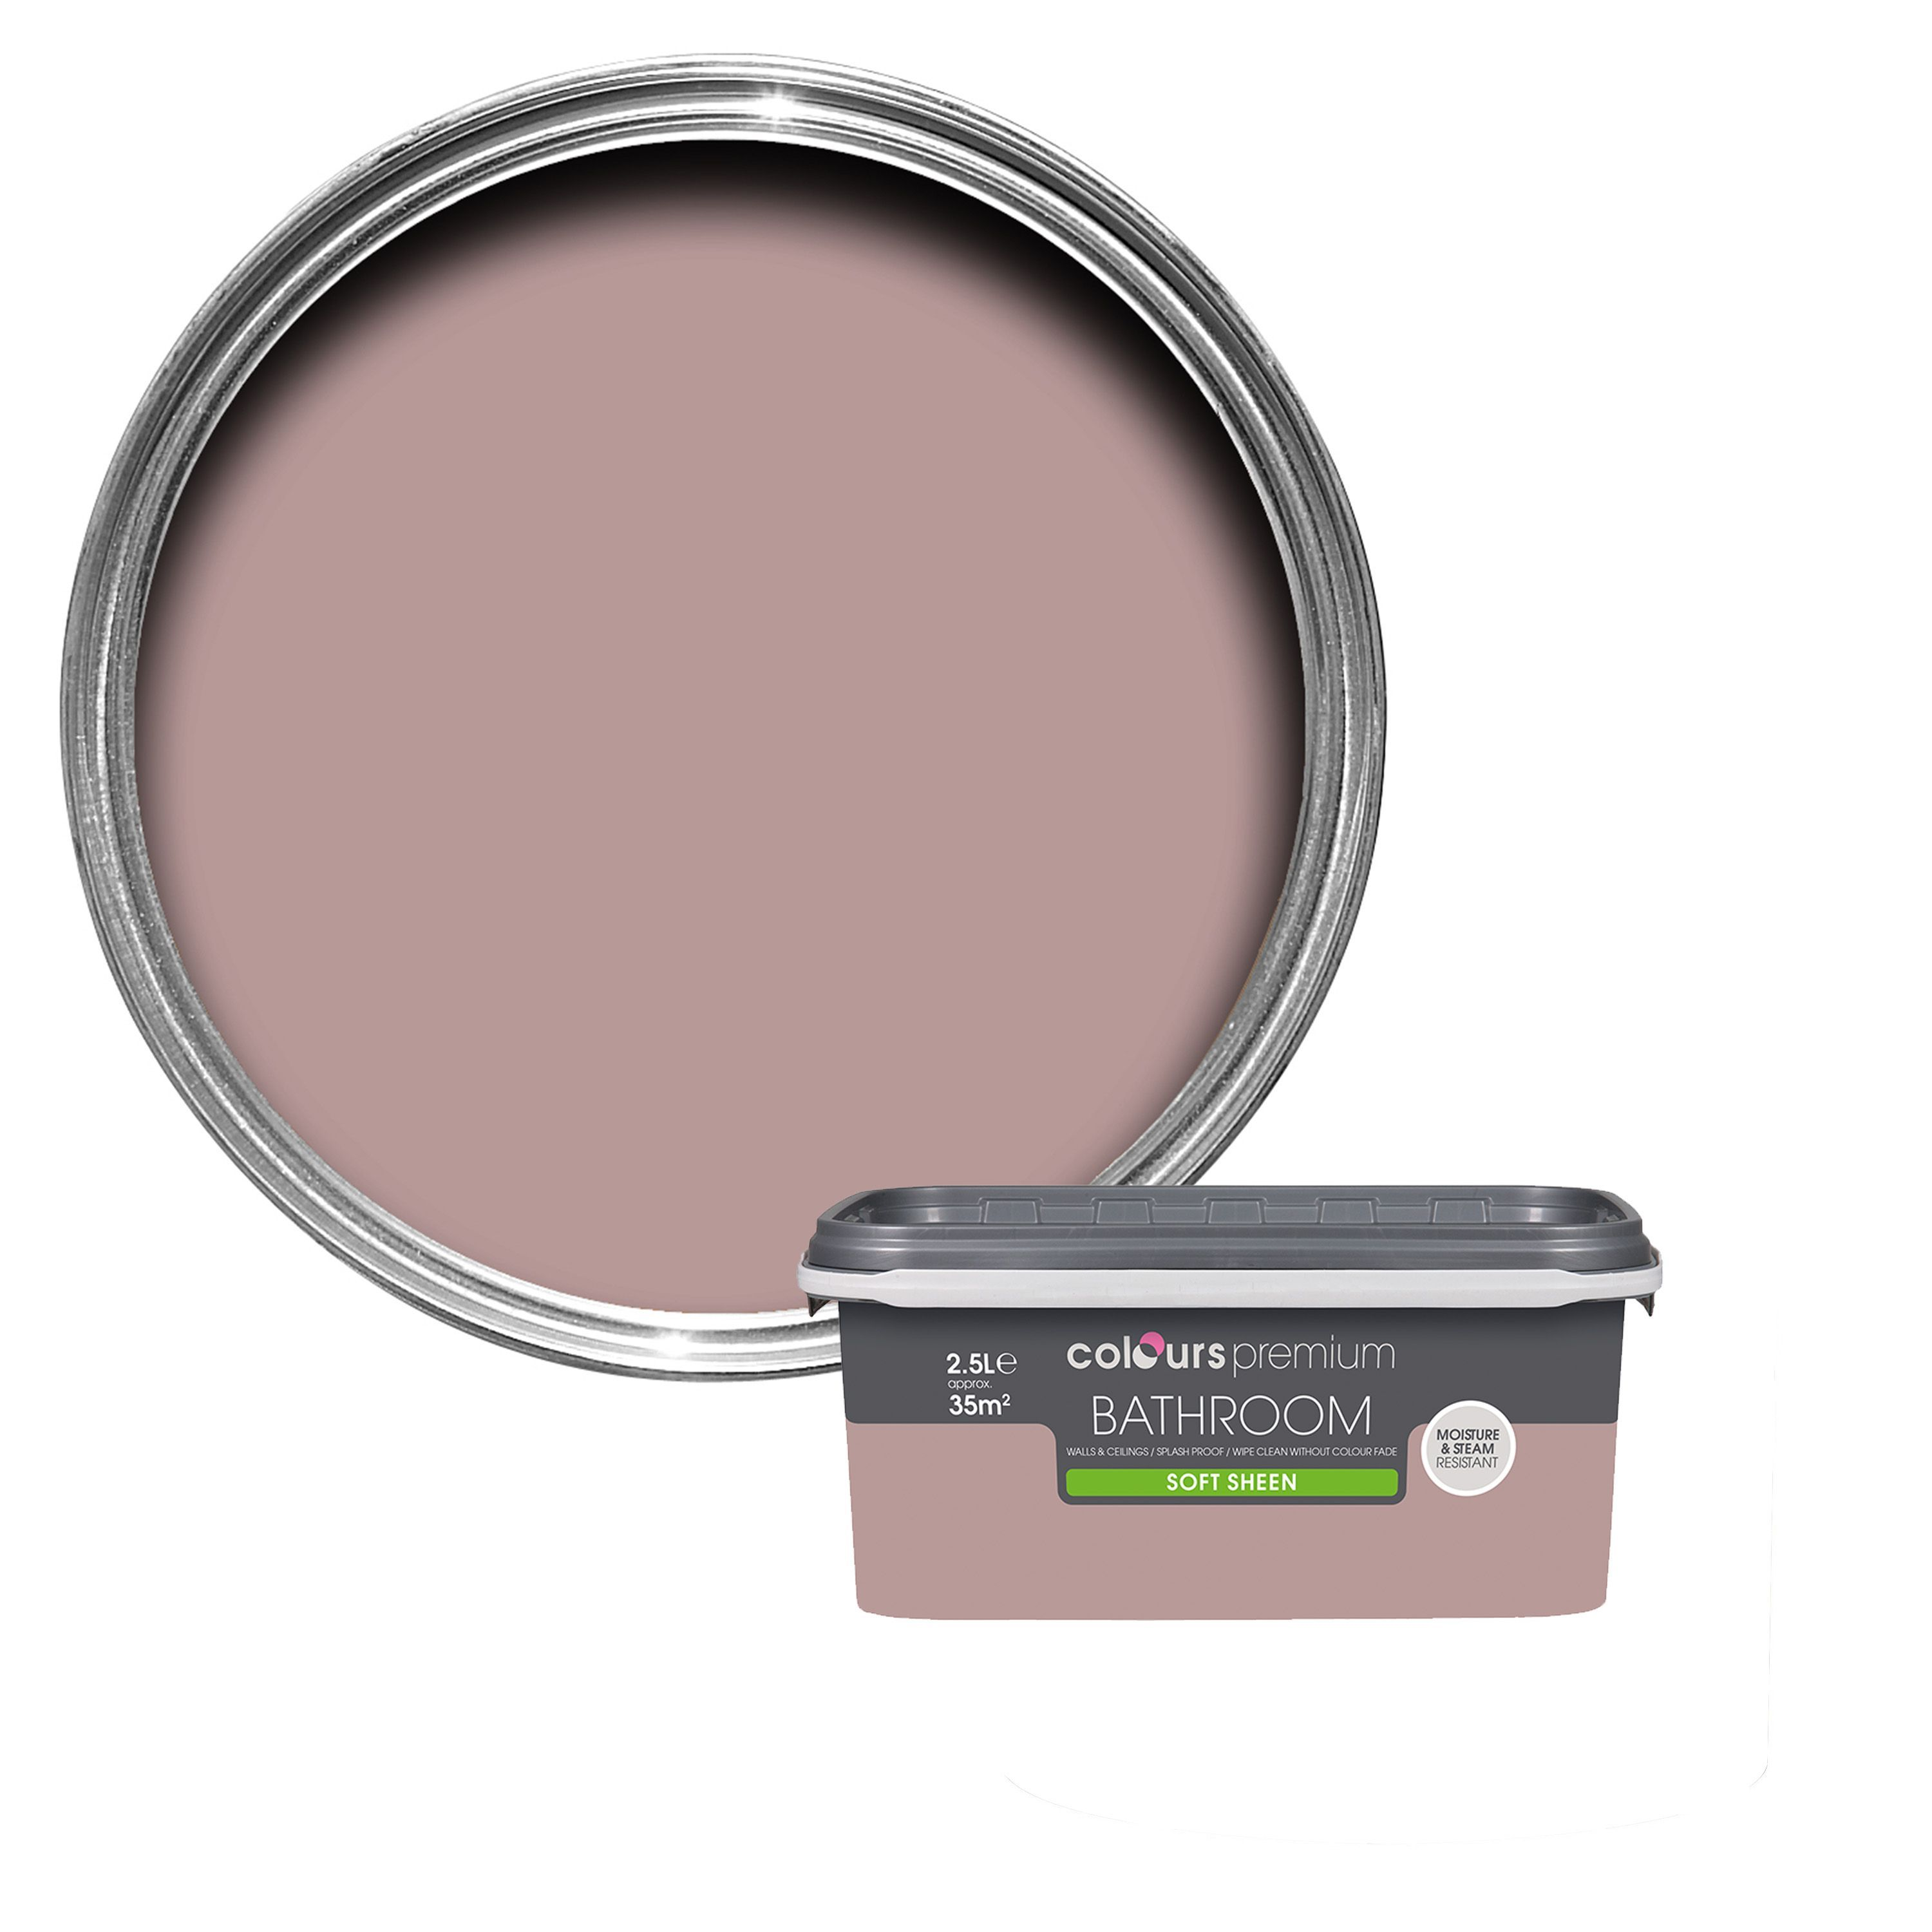 Colours Bathroom Muted Rose Soft Sheen Emulsion Paint 2 5l Departments Diy At B Amp Q Bathroom Colors Soft Sheen Painting Bathroom